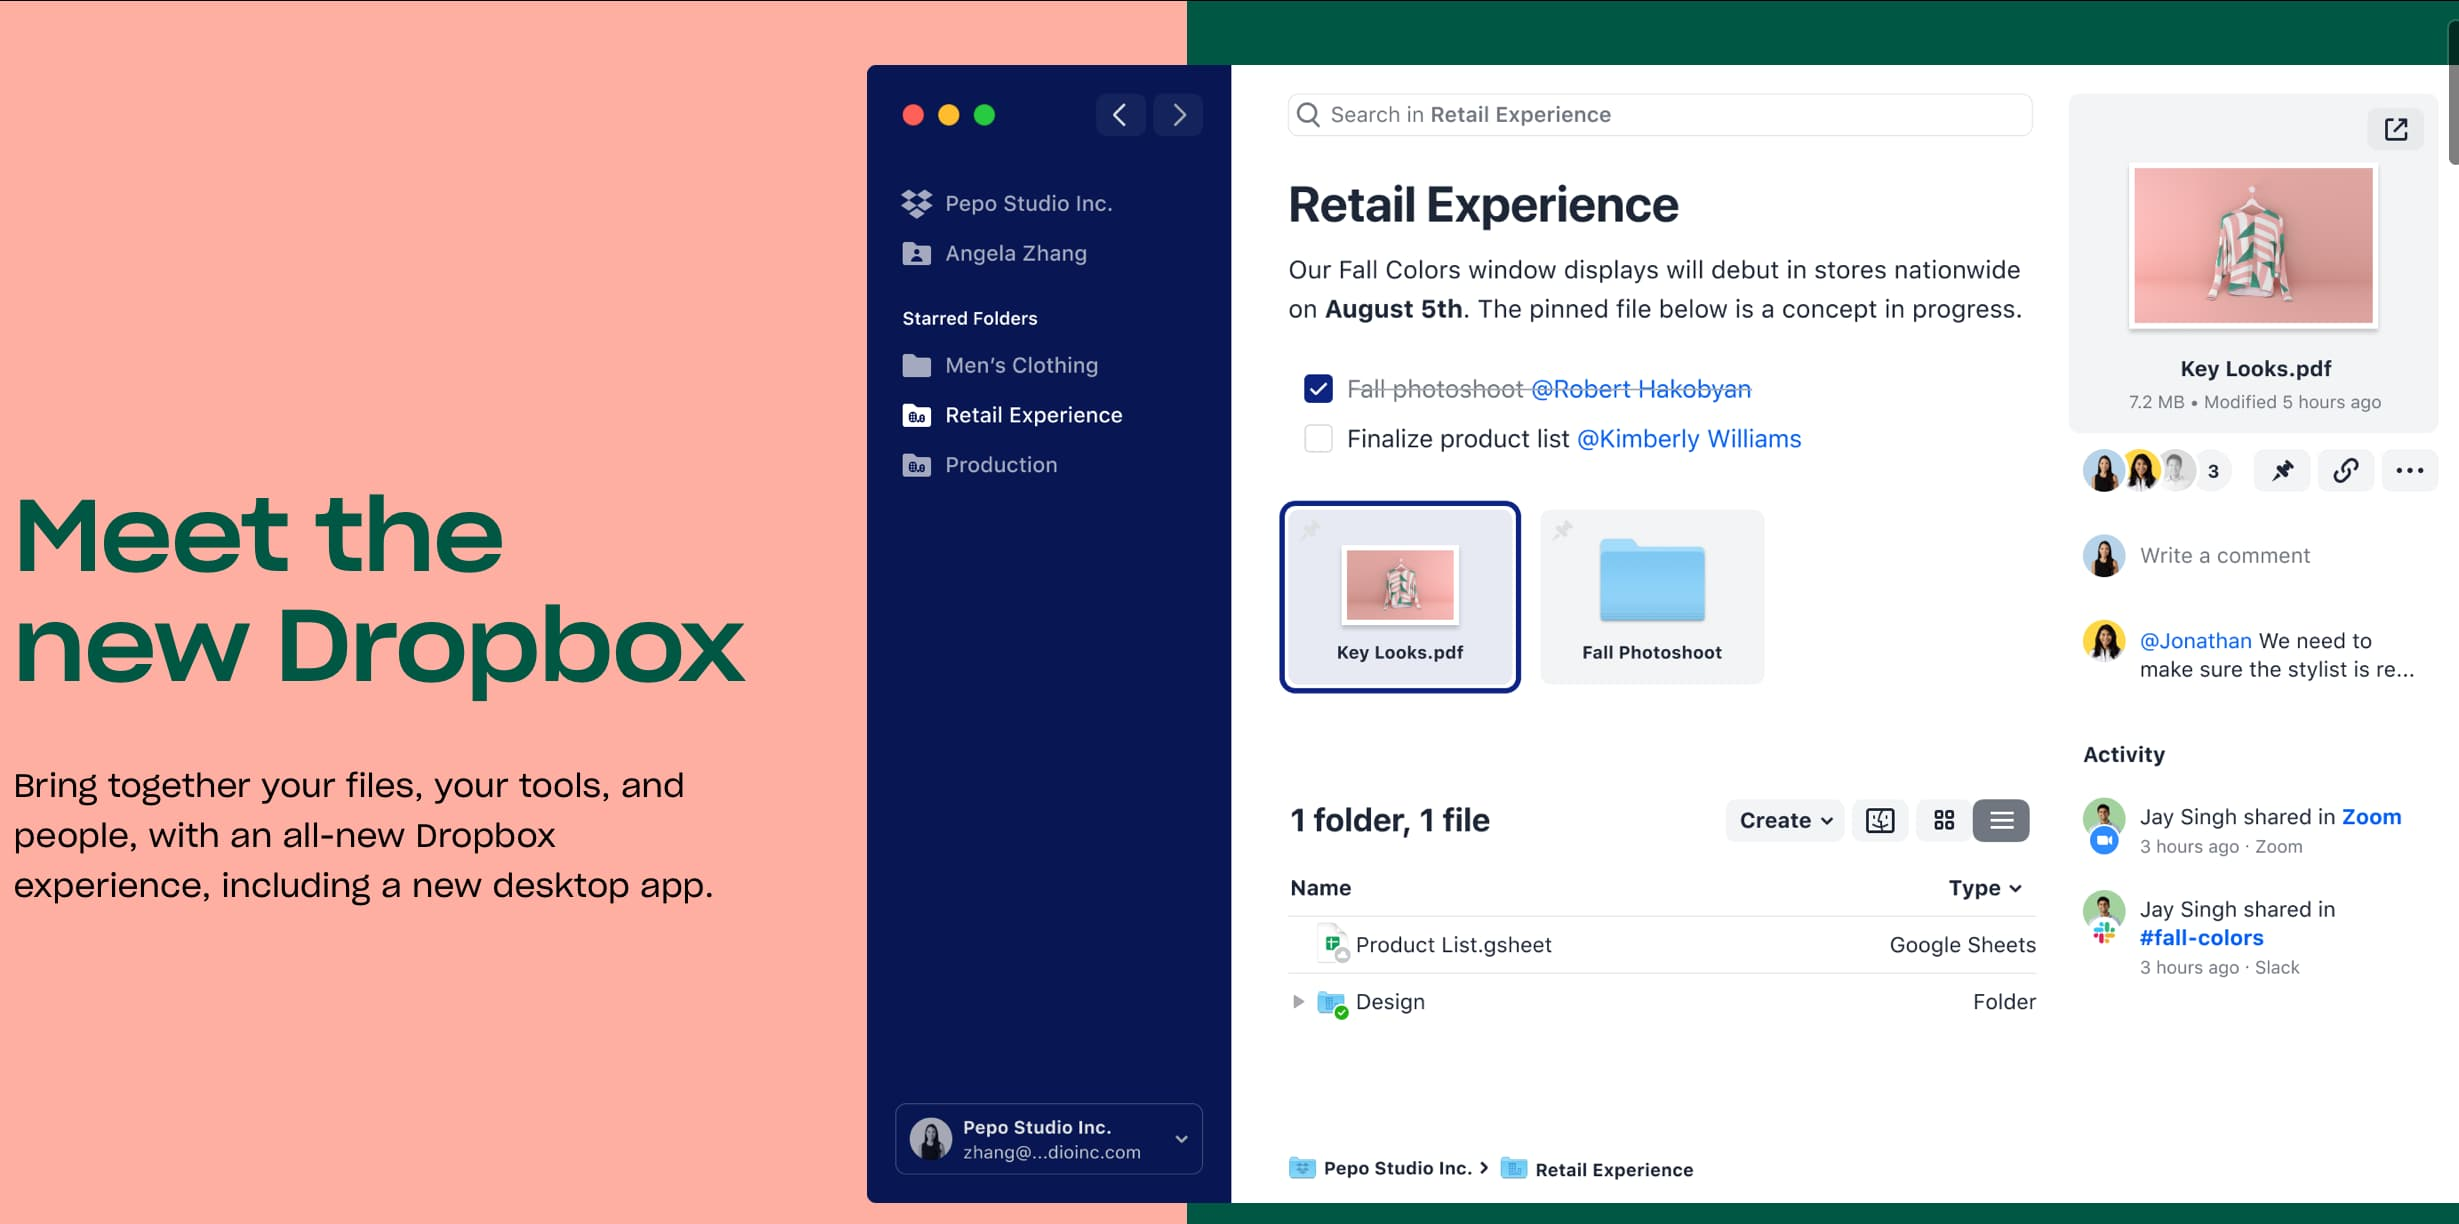 Dropbox unveils its new desktop app